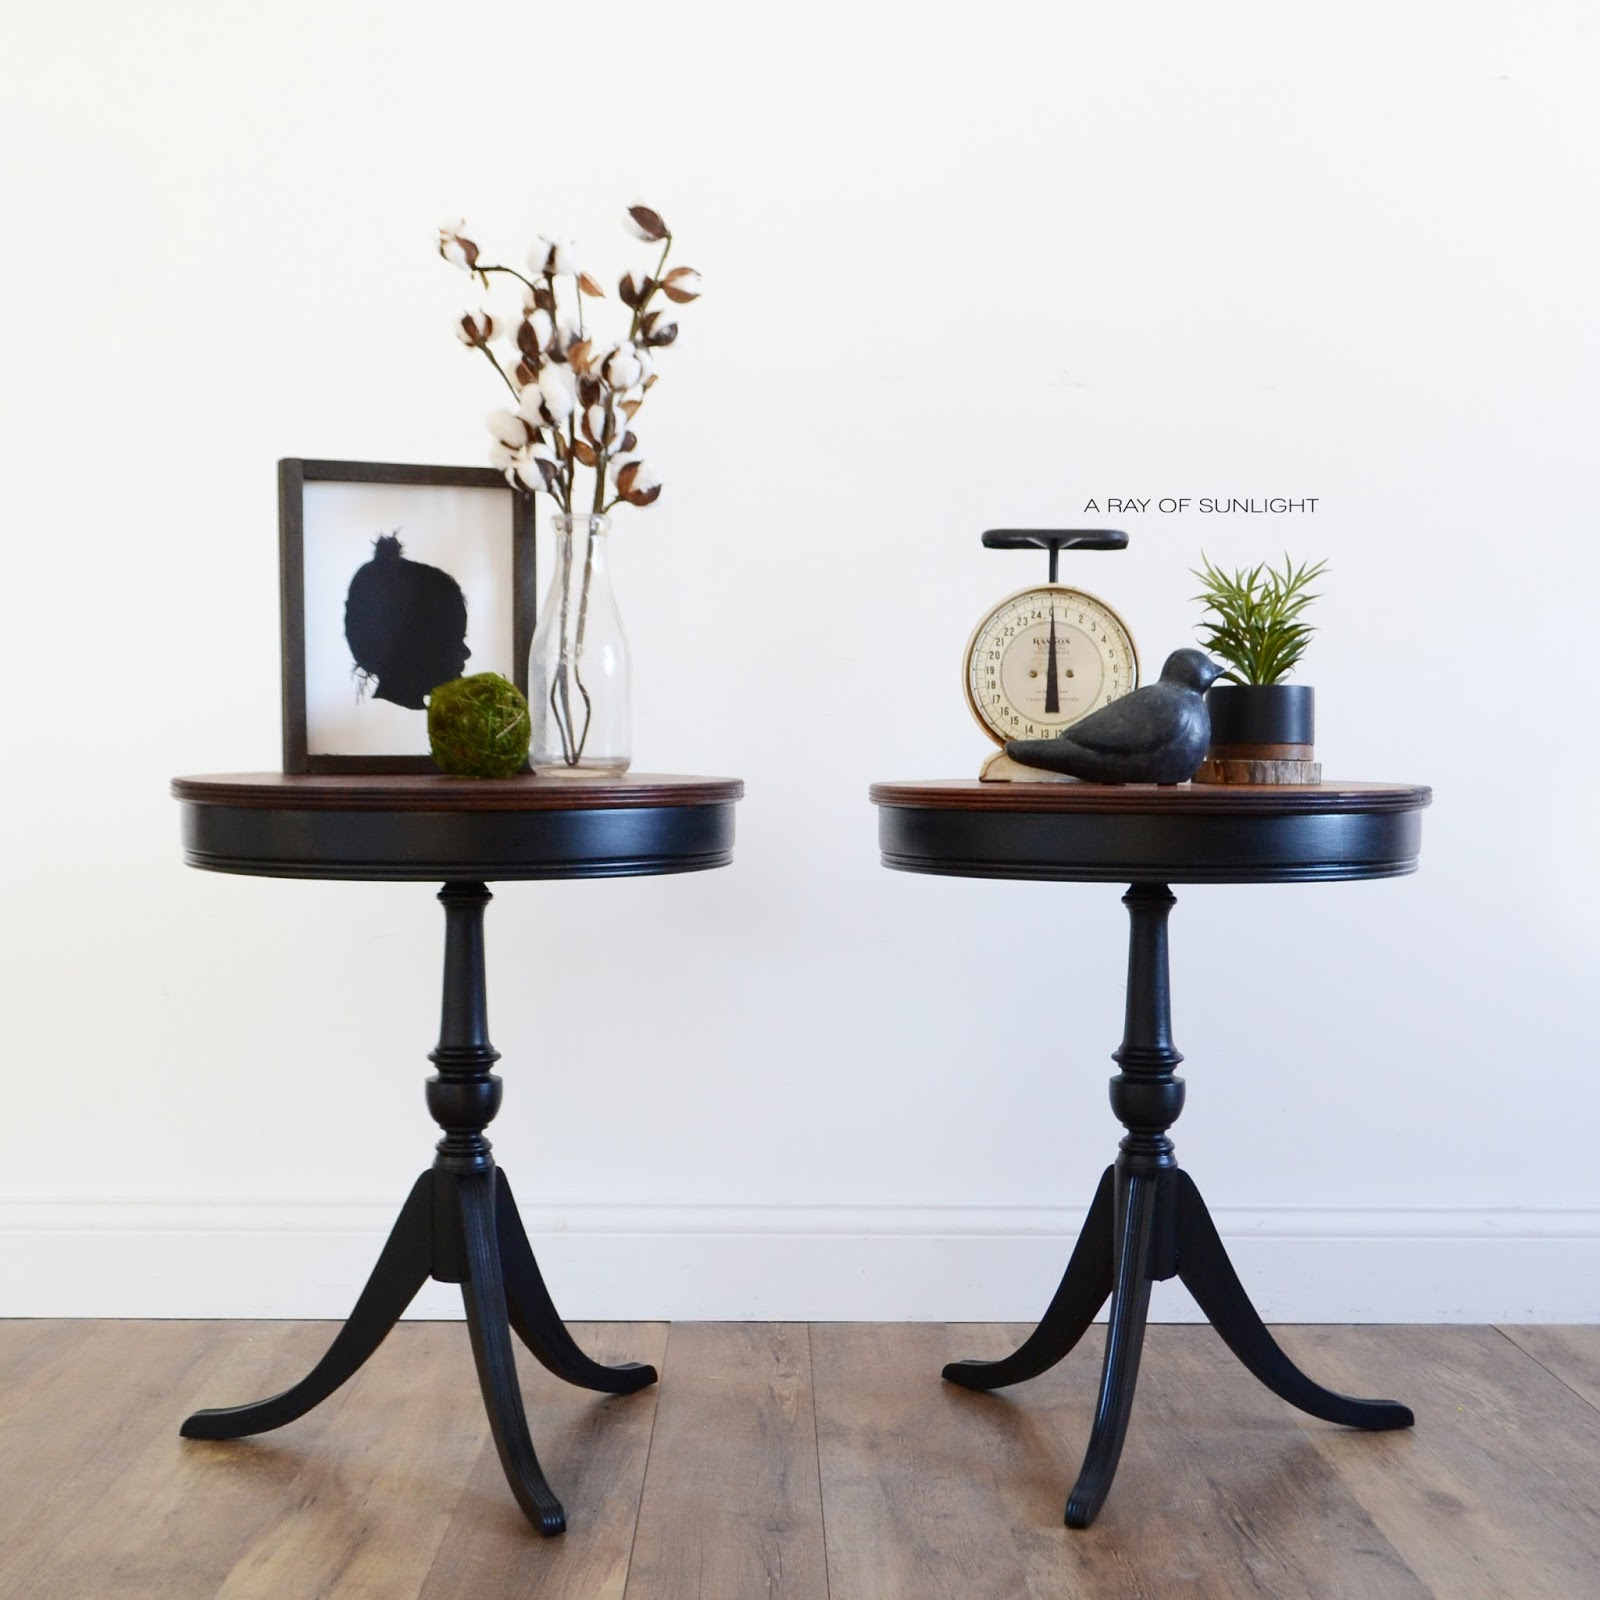 Pair of Matching Black Antique Drum Tables in Old Barn Milk Paint